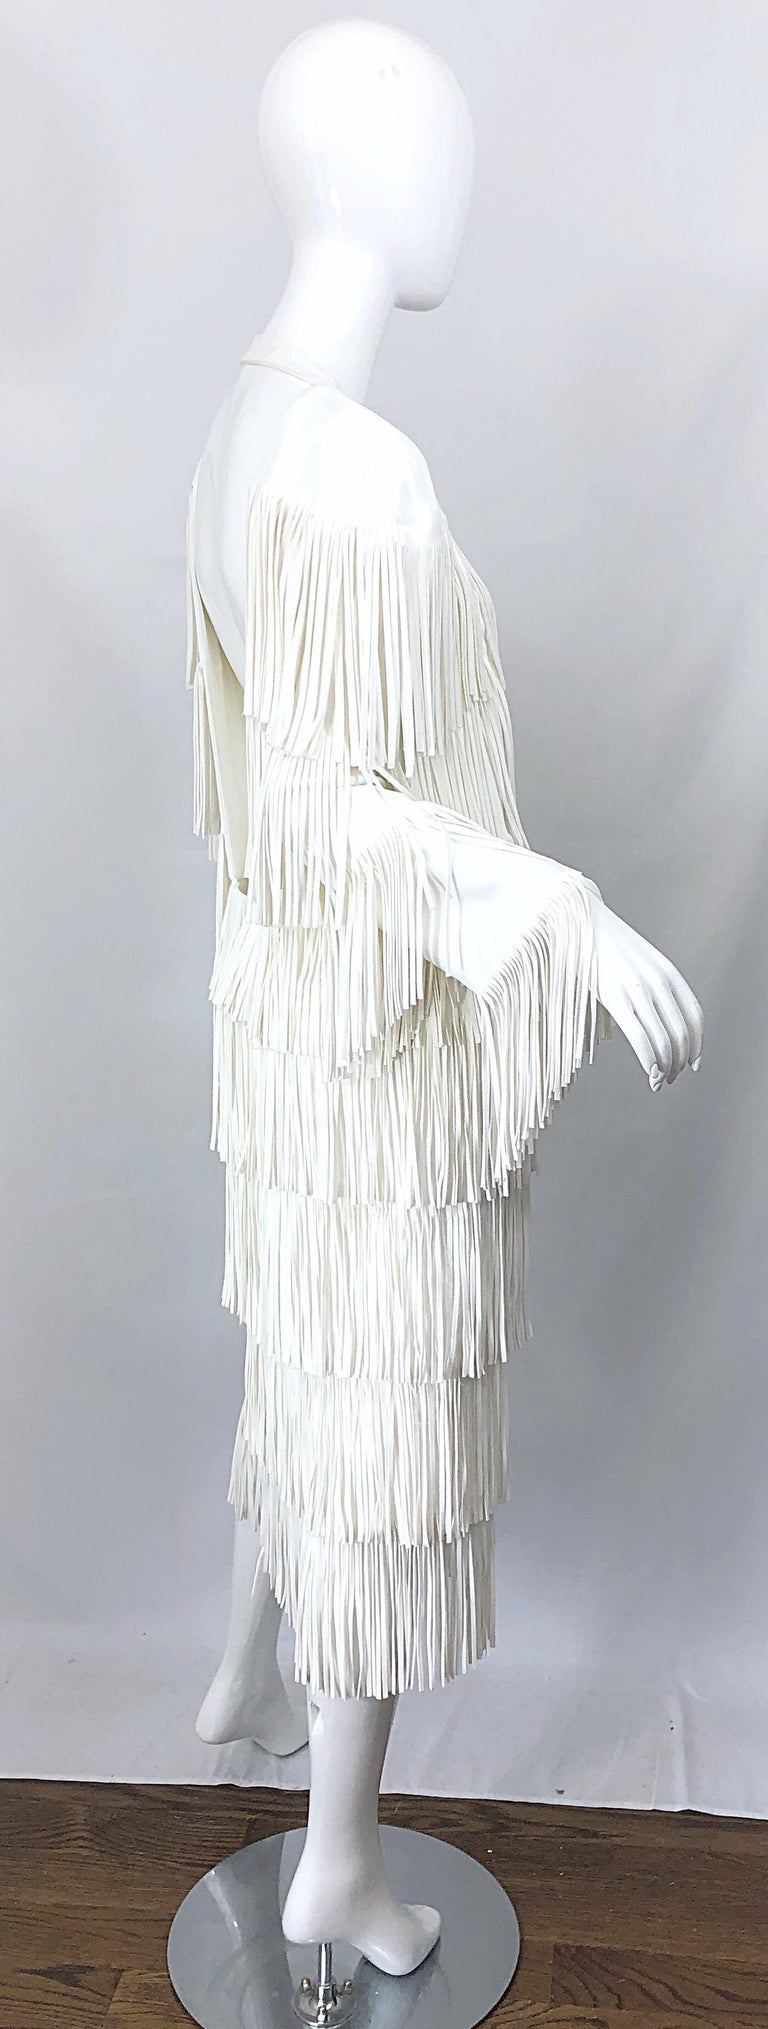 NWT Tom Ford $7,000 Runway Fall 2015 Size 42 / 8 White Open Back Fringe Dress For Sale 4